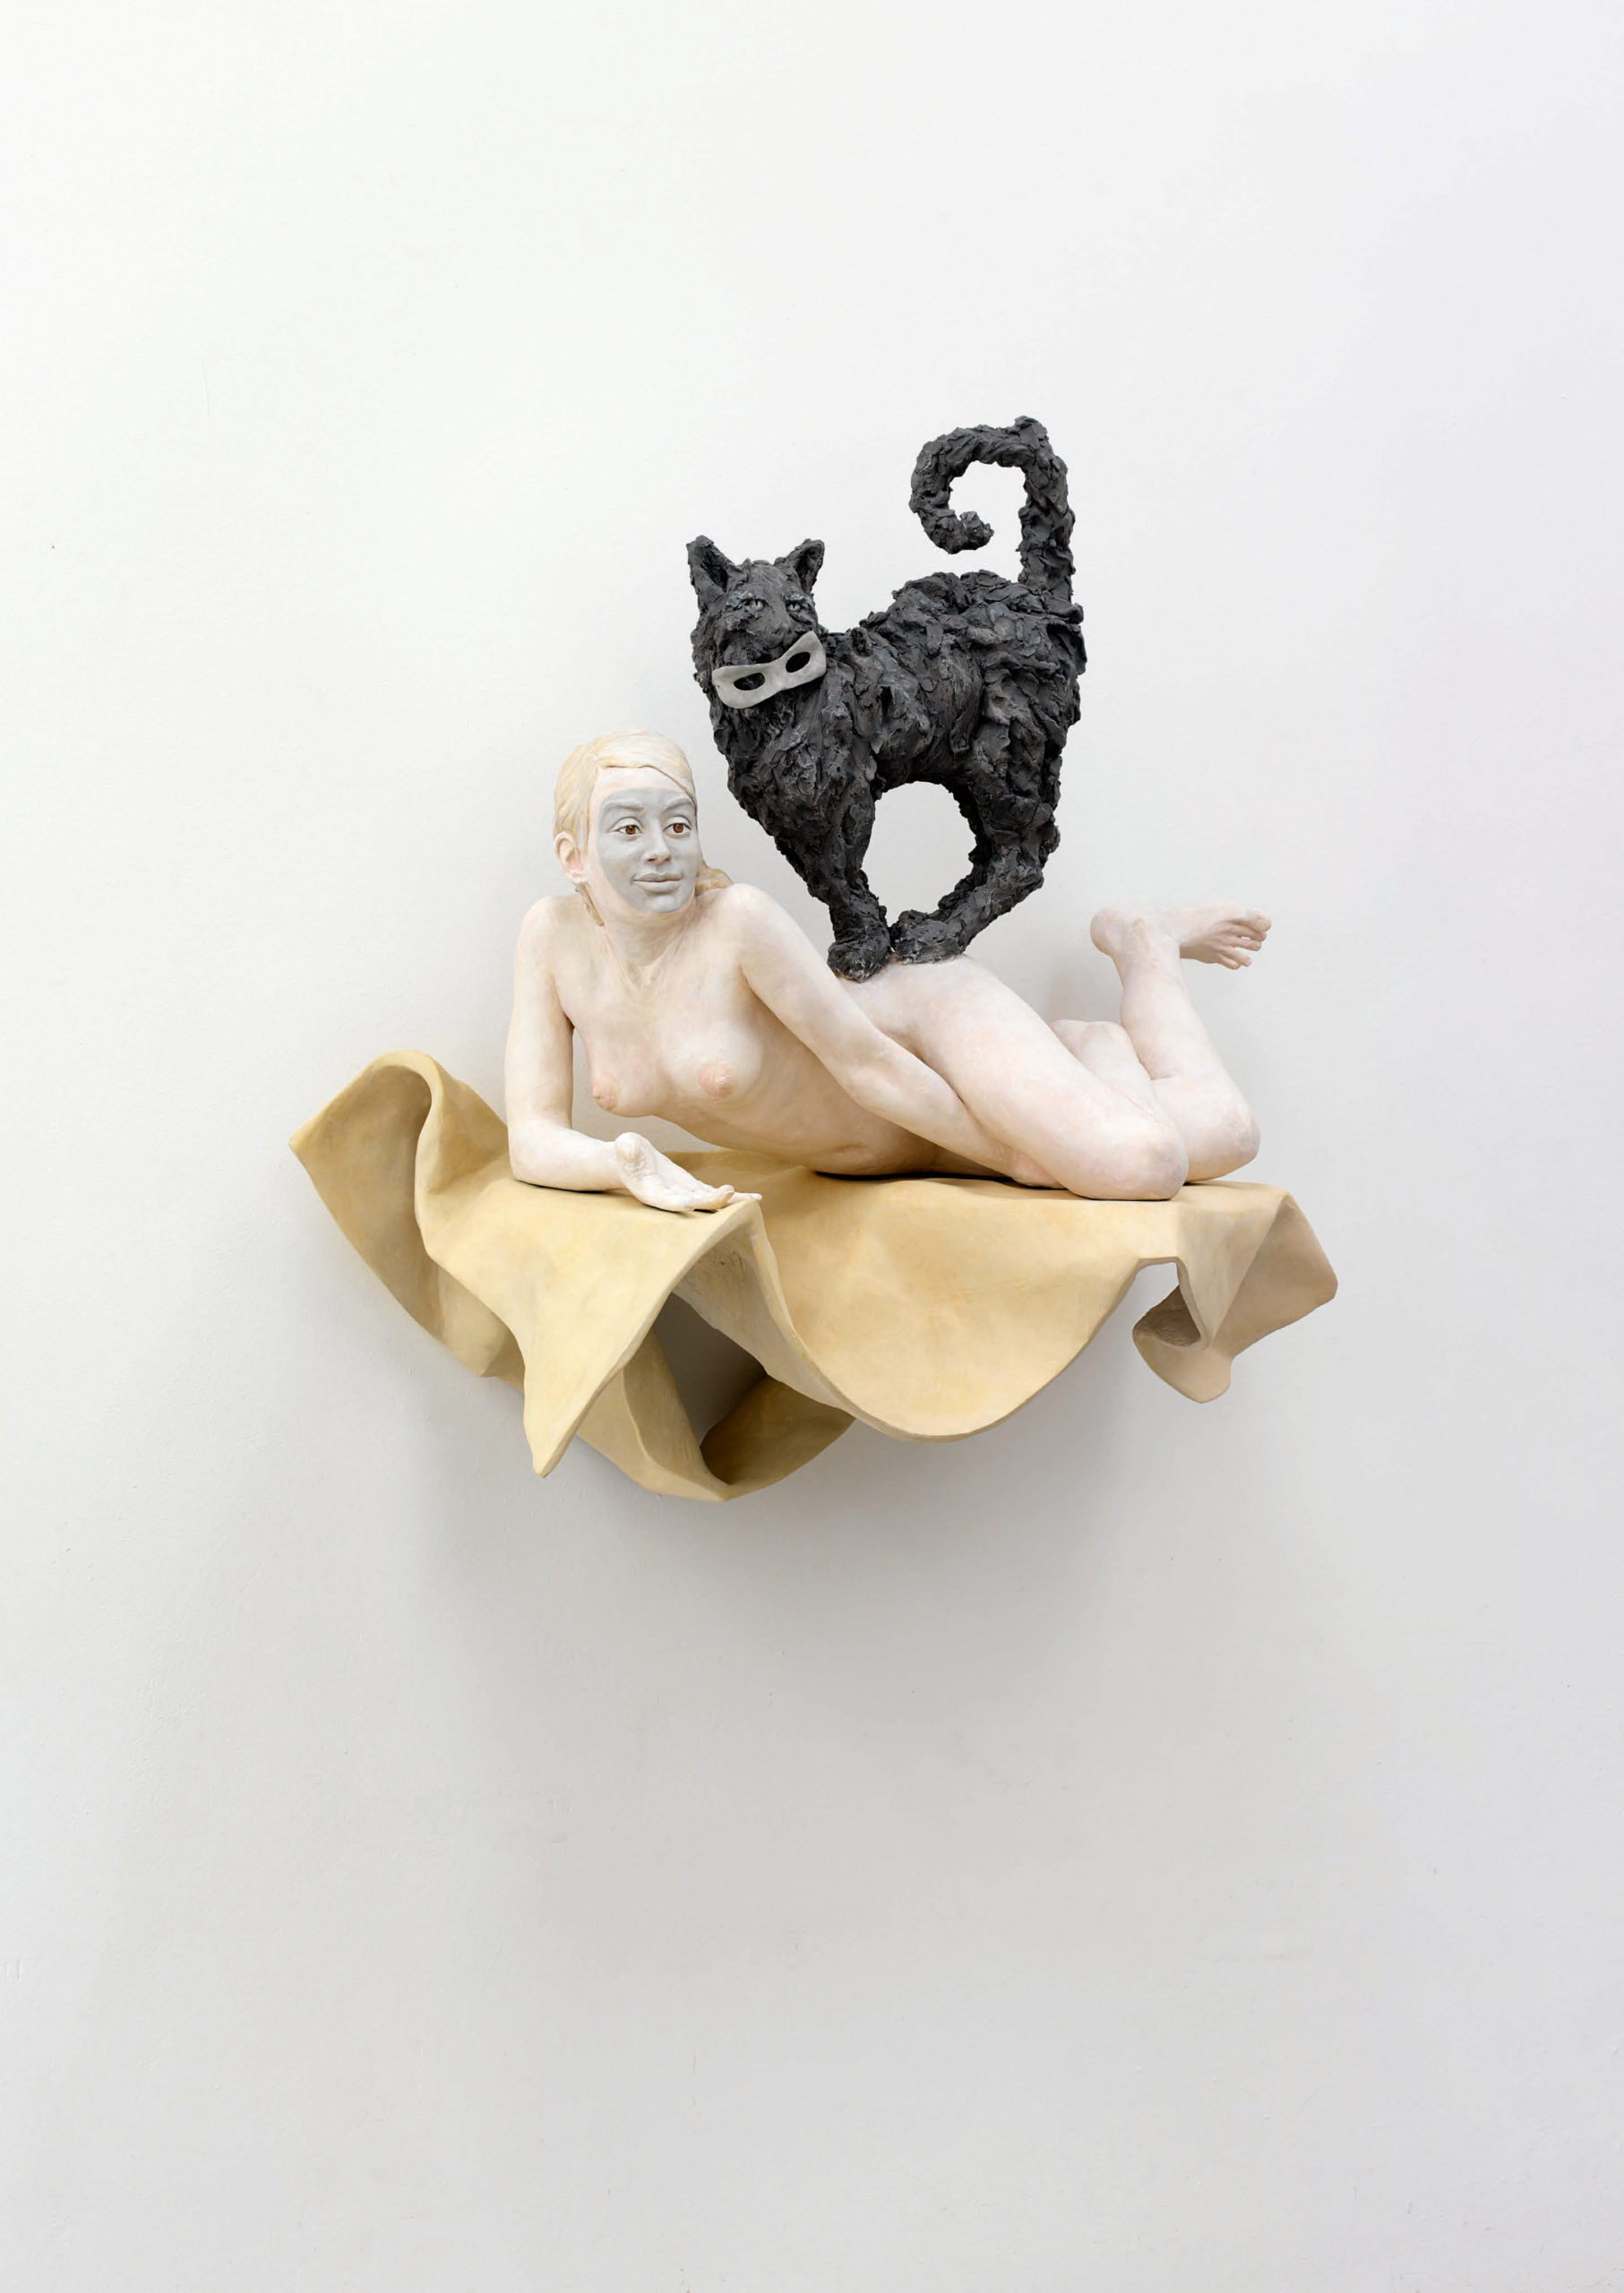 Pia Stadtbäumer, All Eyes On You (Miriam mit Katze und Masken), 2012